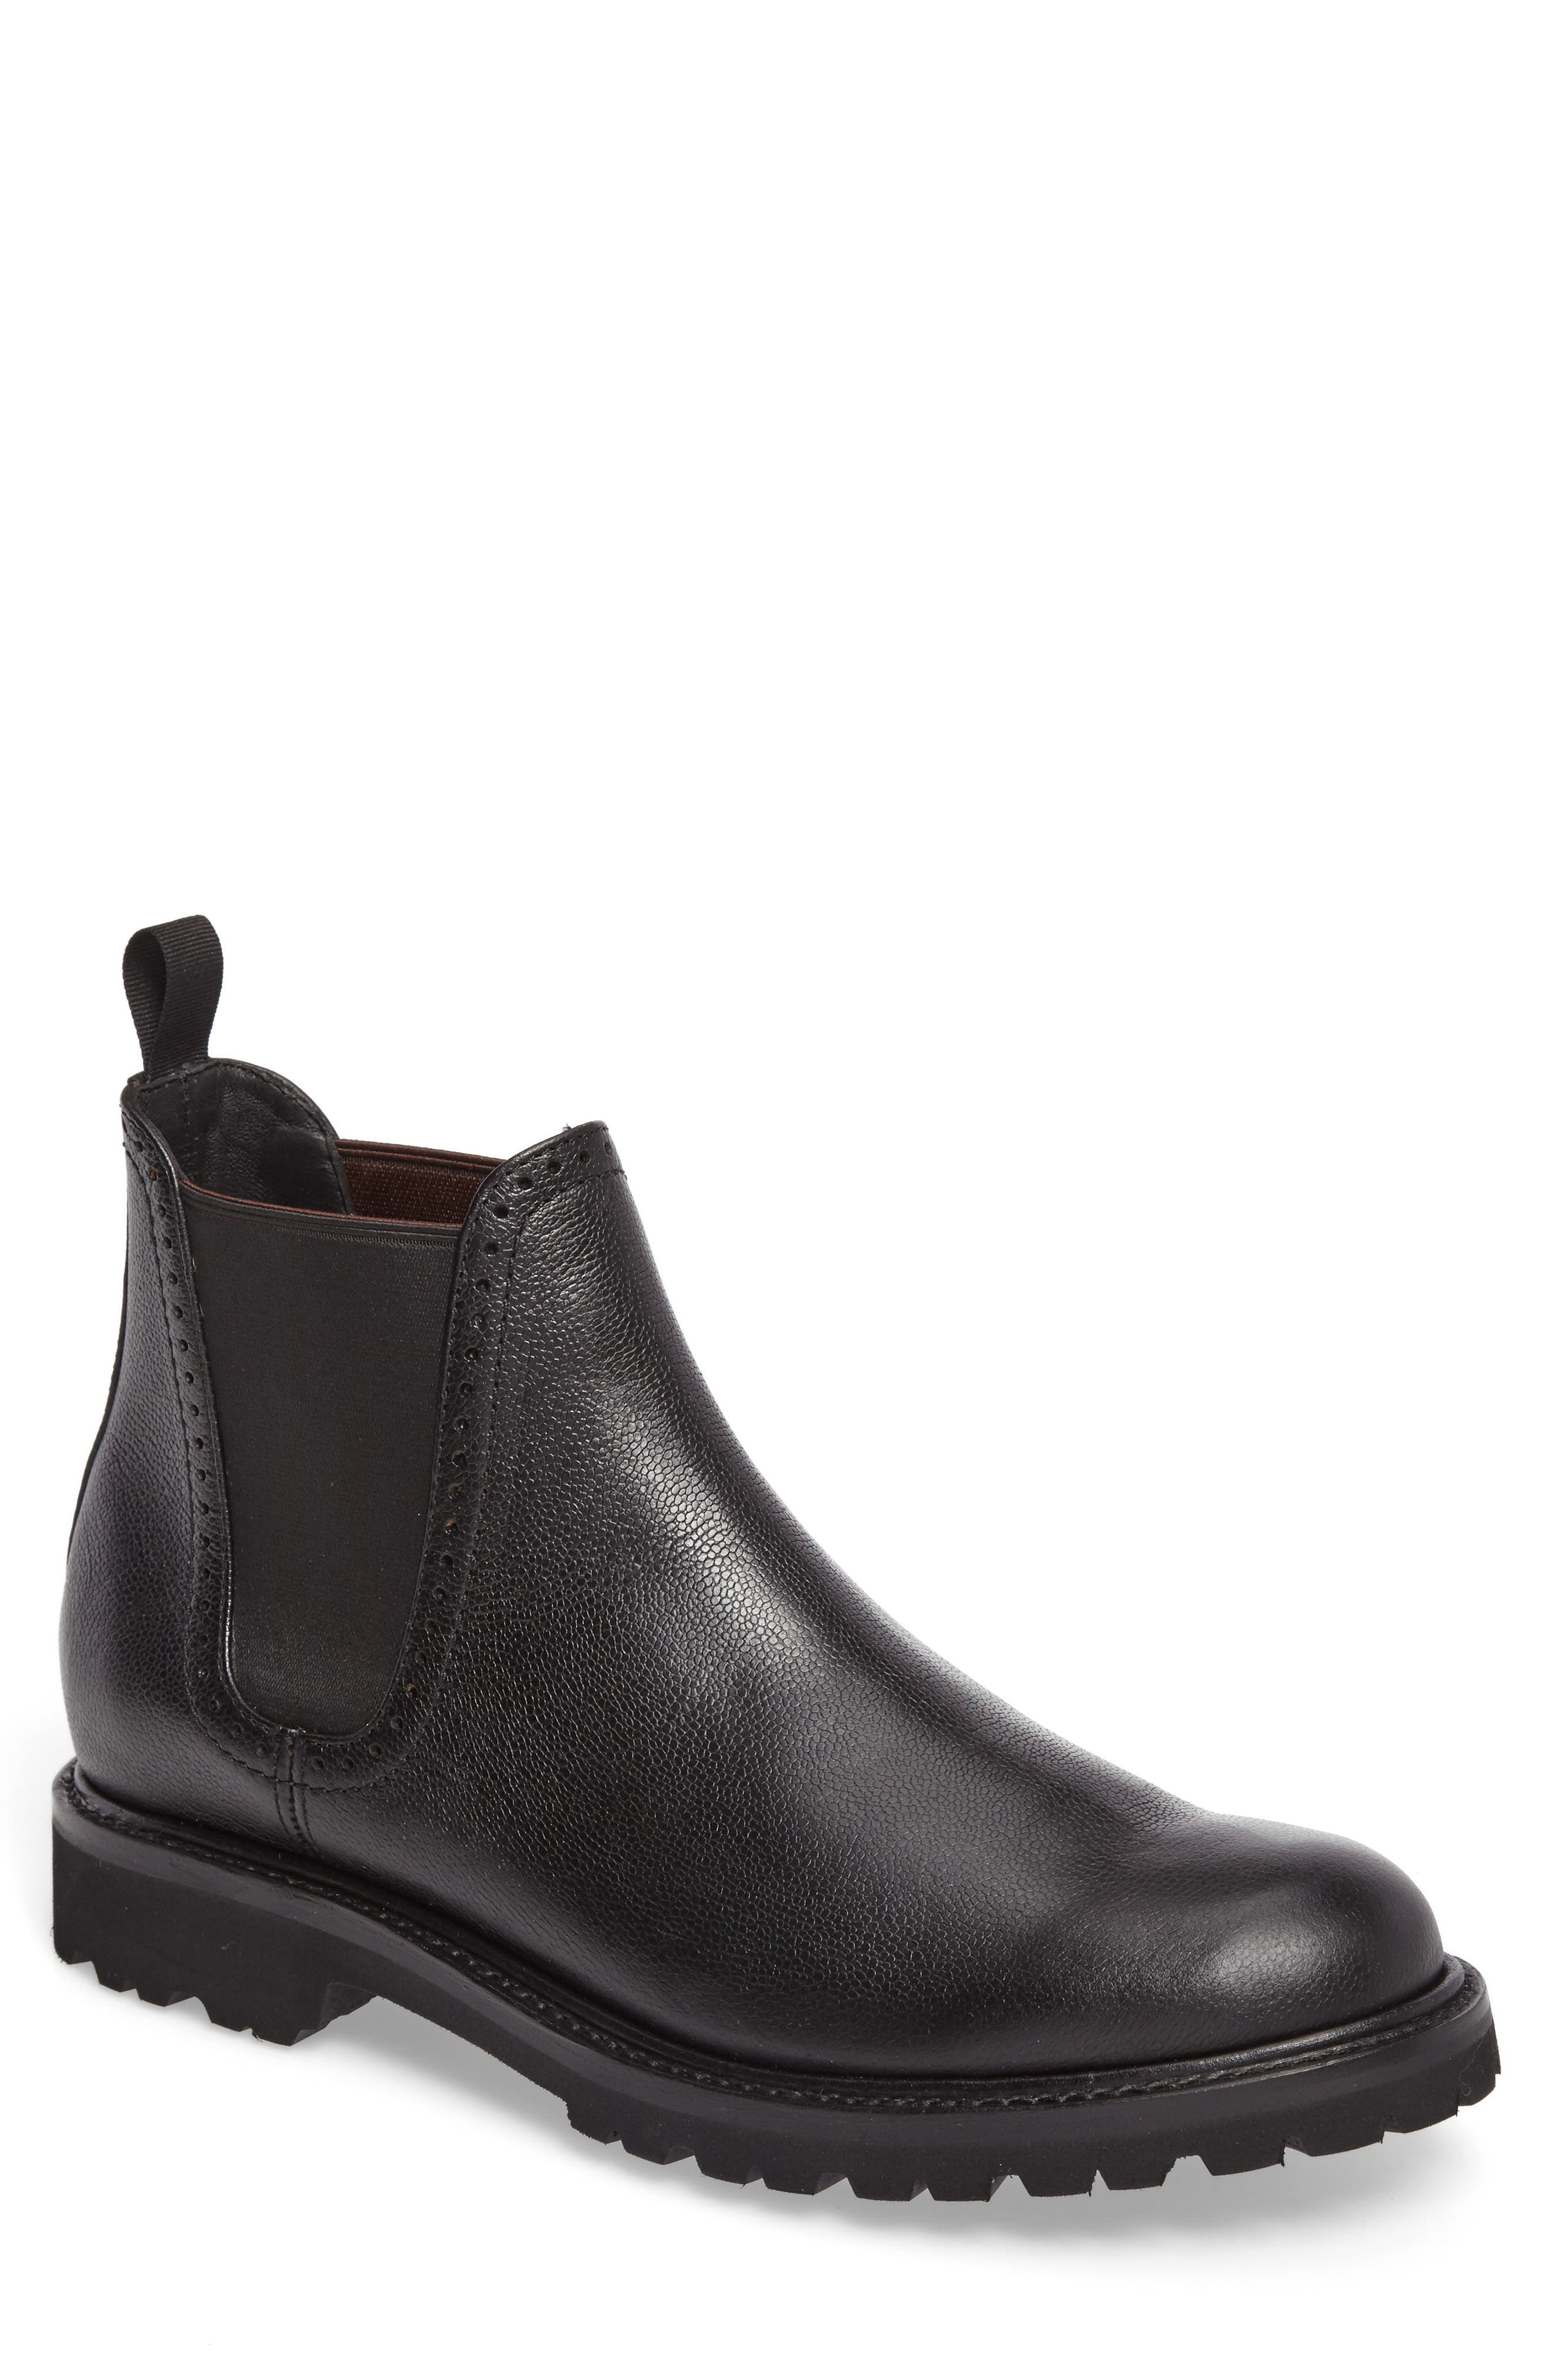 Cromwell Chelsea Boot,                             Main thumbnail 1, color,                             001